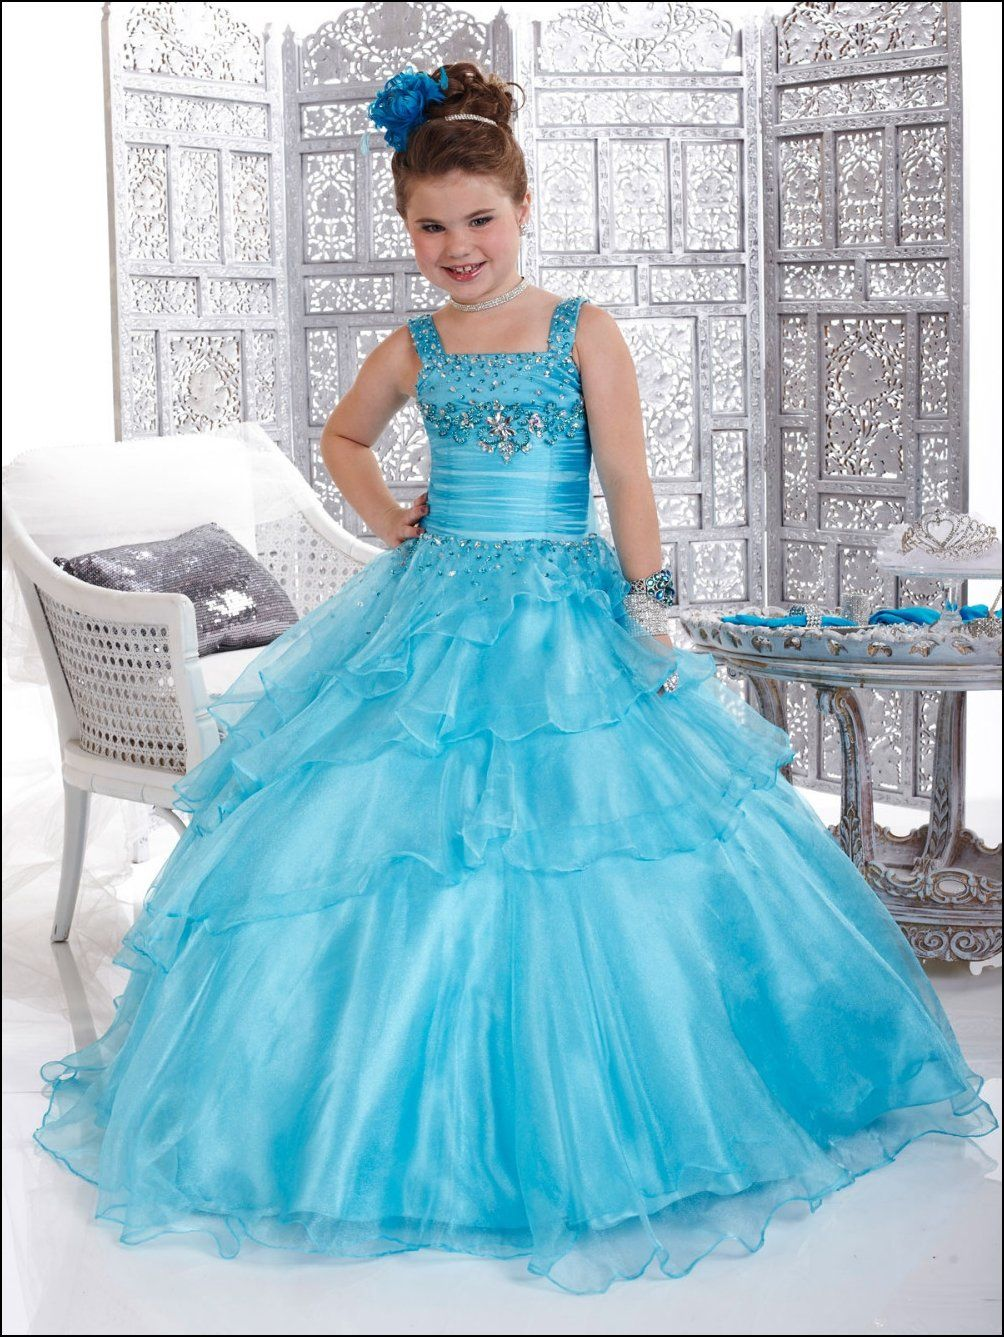 Gown Dresses for Kids | Coat Pant | Love......it!!!❤ | Pinterest ...